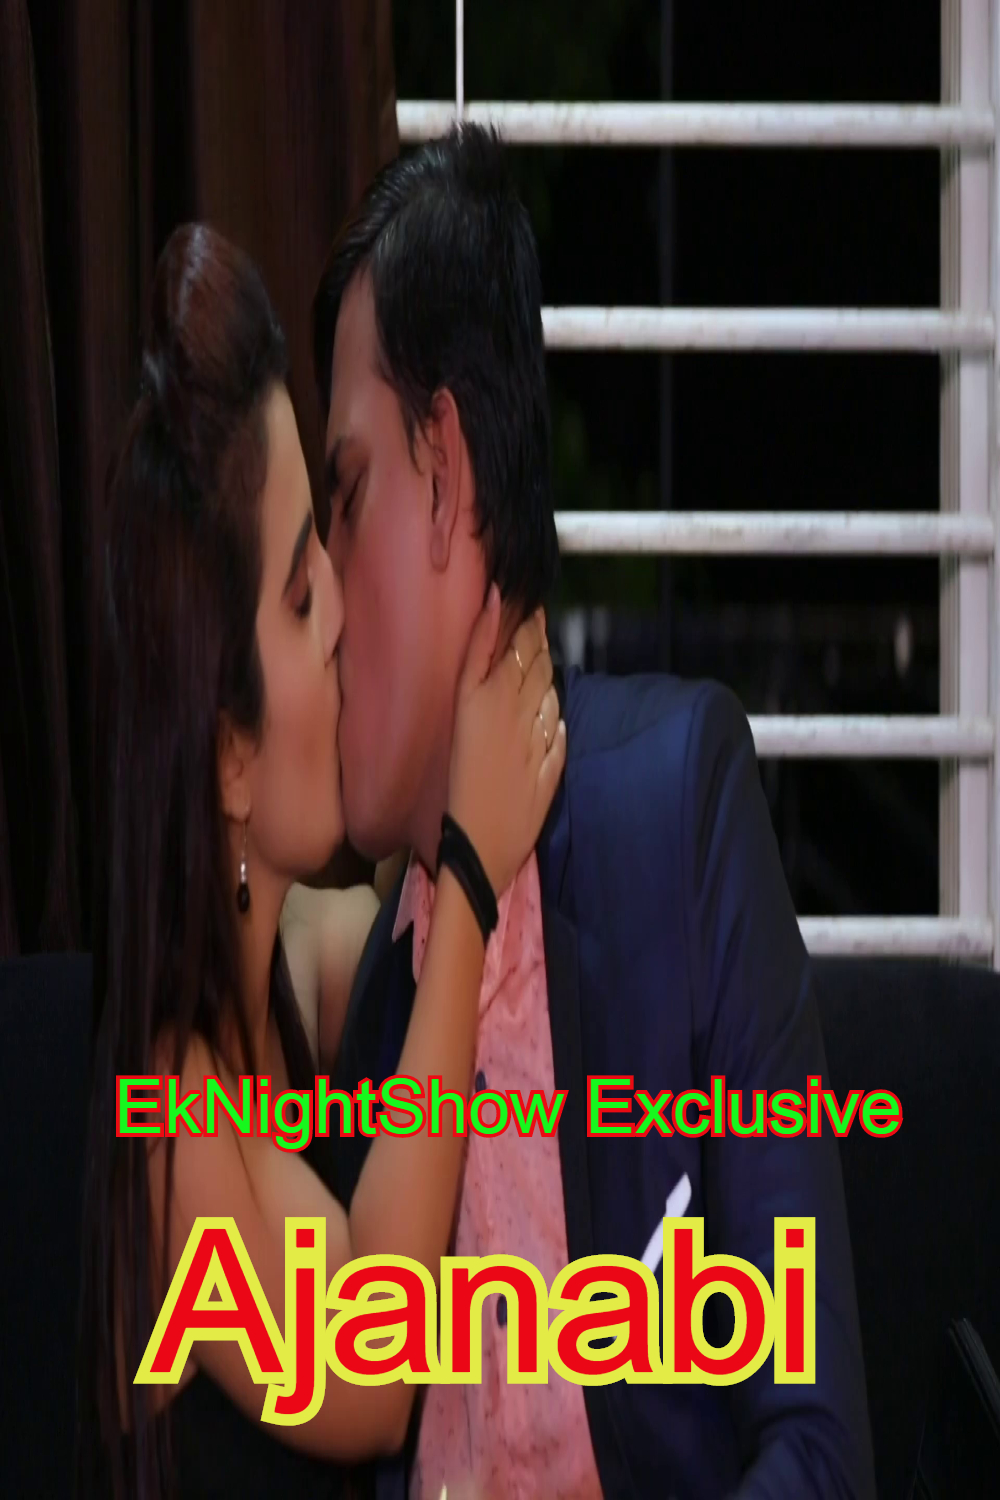 Ajanabi 2020 EknightShow Originals Hindi Short Film 720p HDRip 190MB x264 AAC